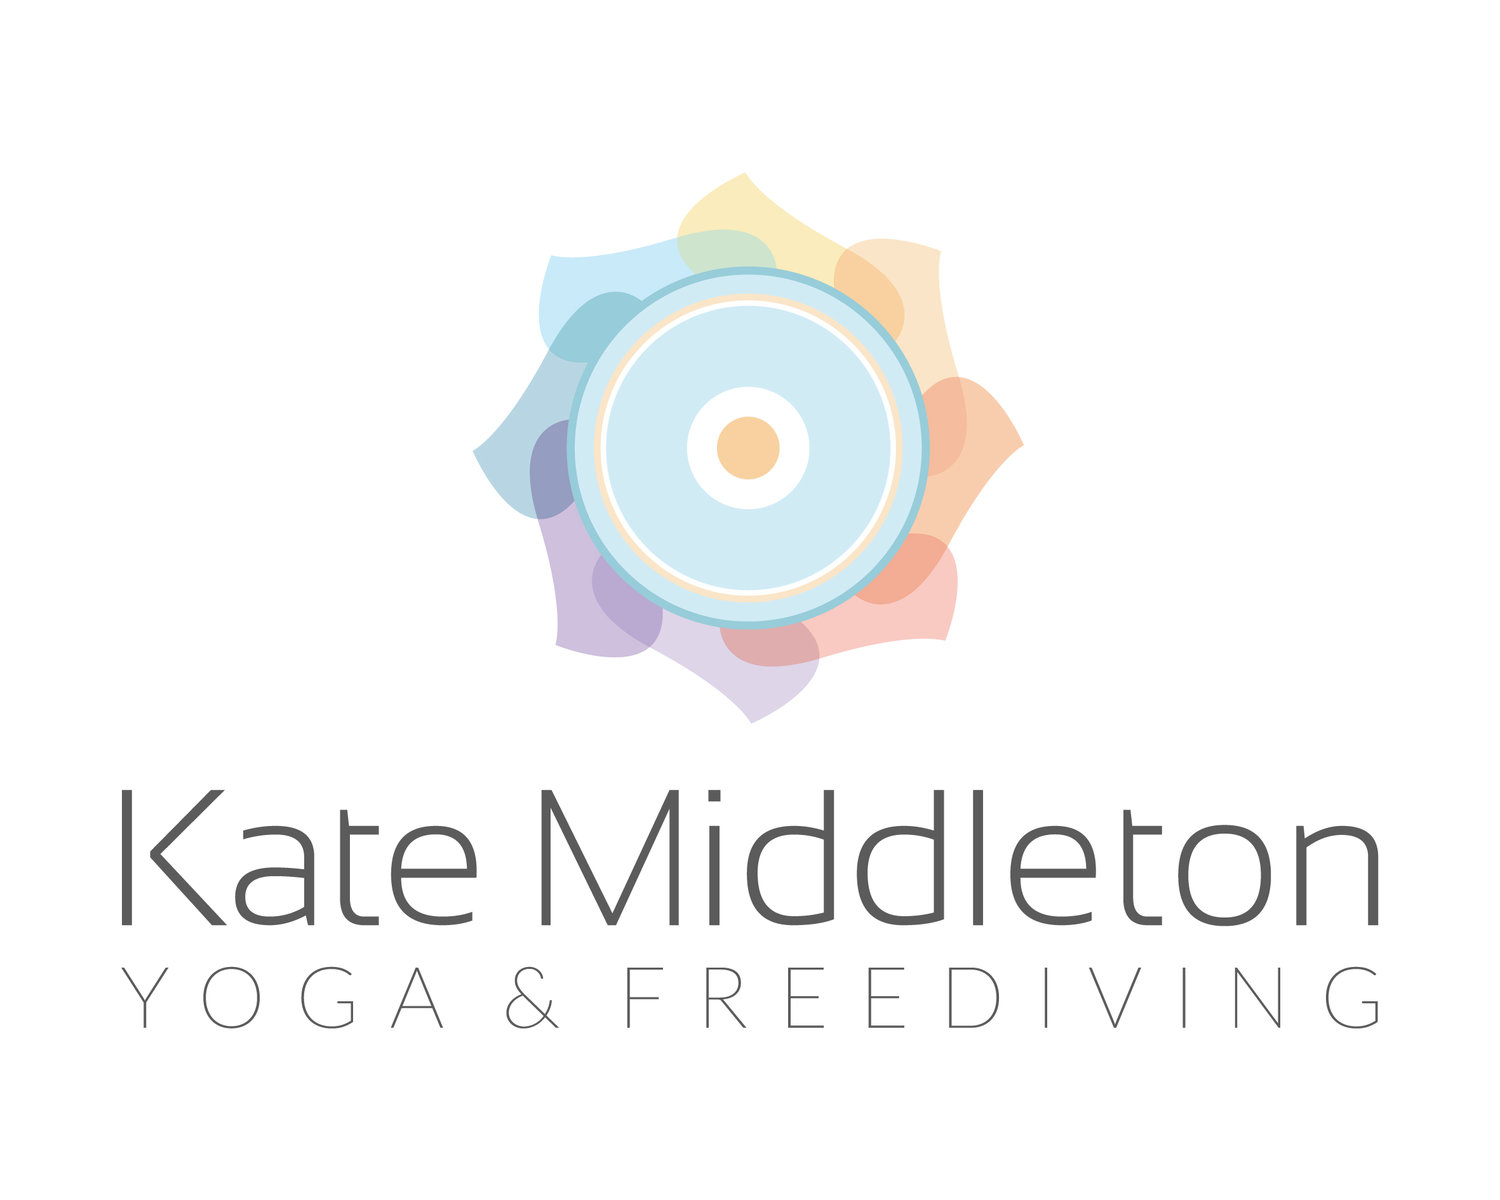 KATE MIDDLETON YOGA